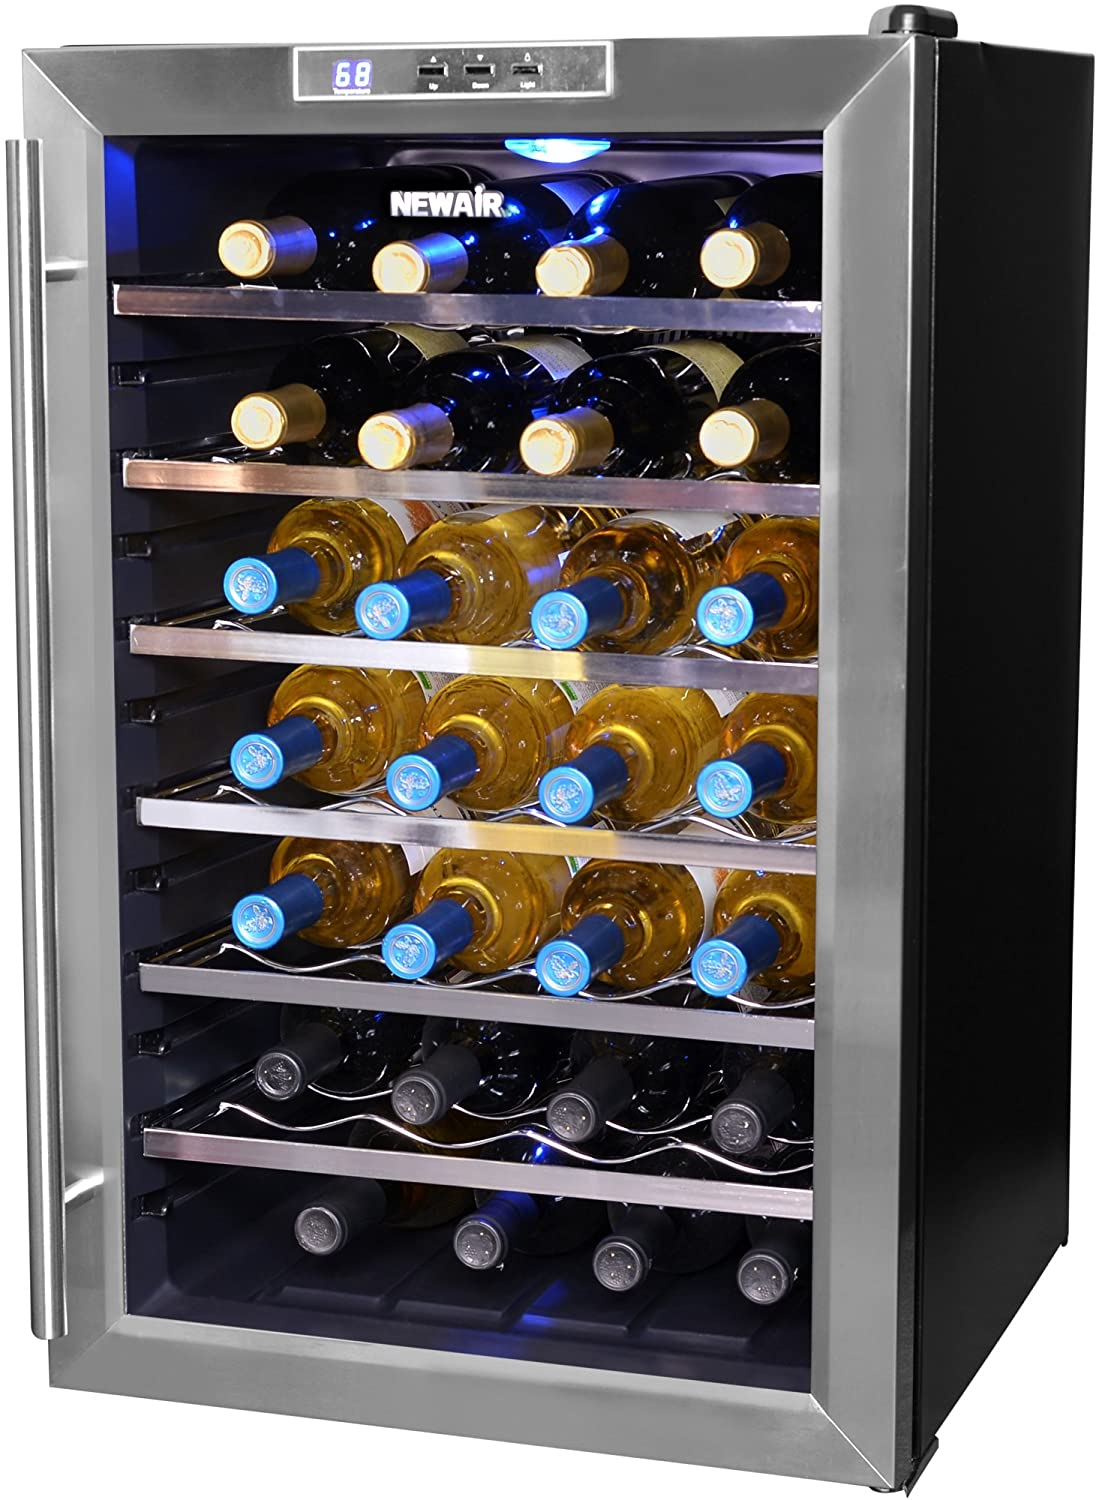 The Best Wine Refrigerator Reviews & Buying Guide 3